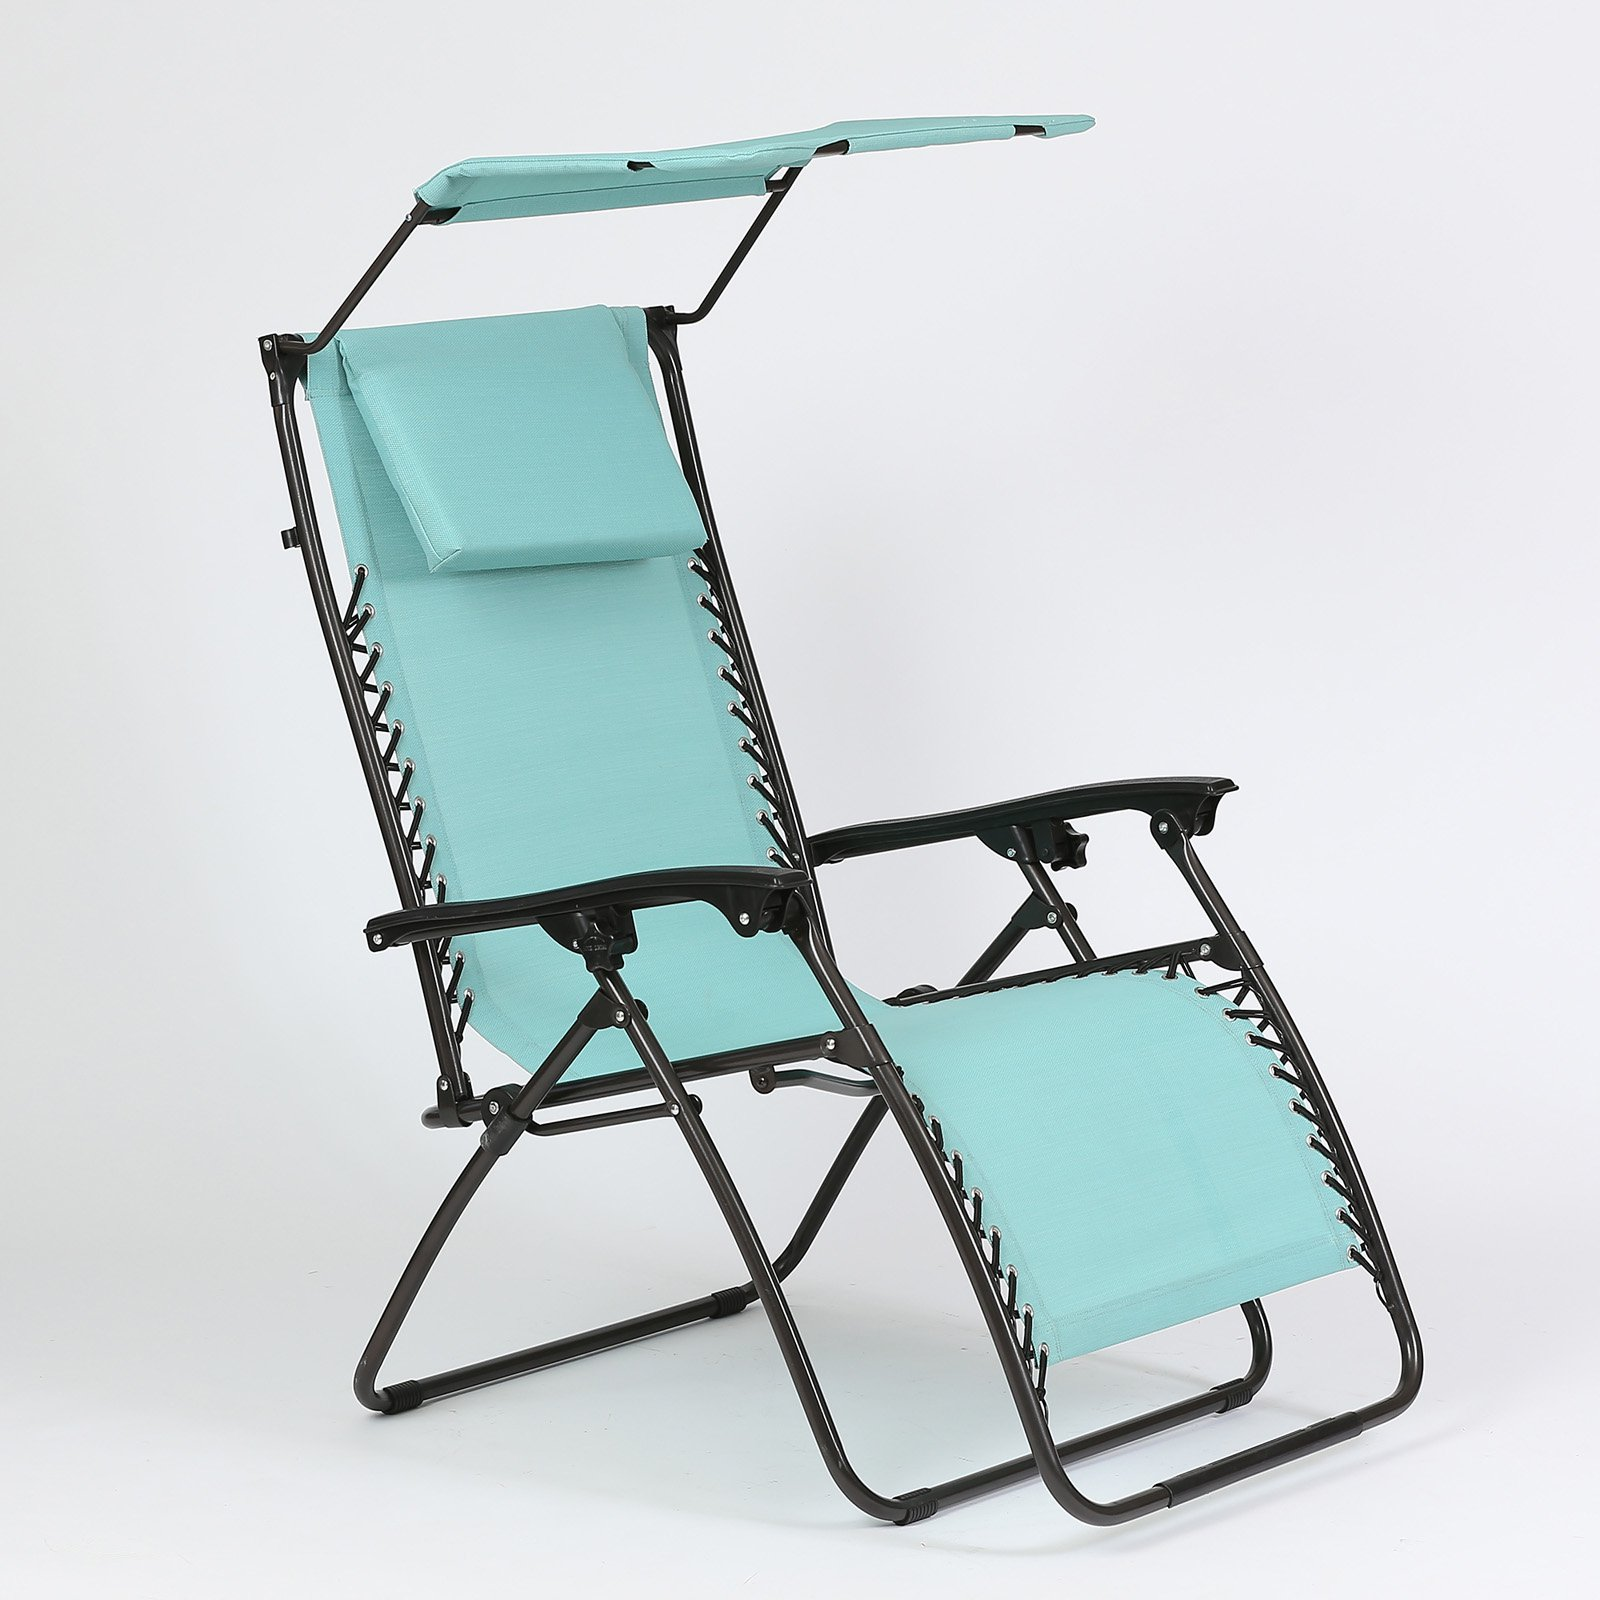 Winsome House Zero Gravity Lounge Chair with Canopy